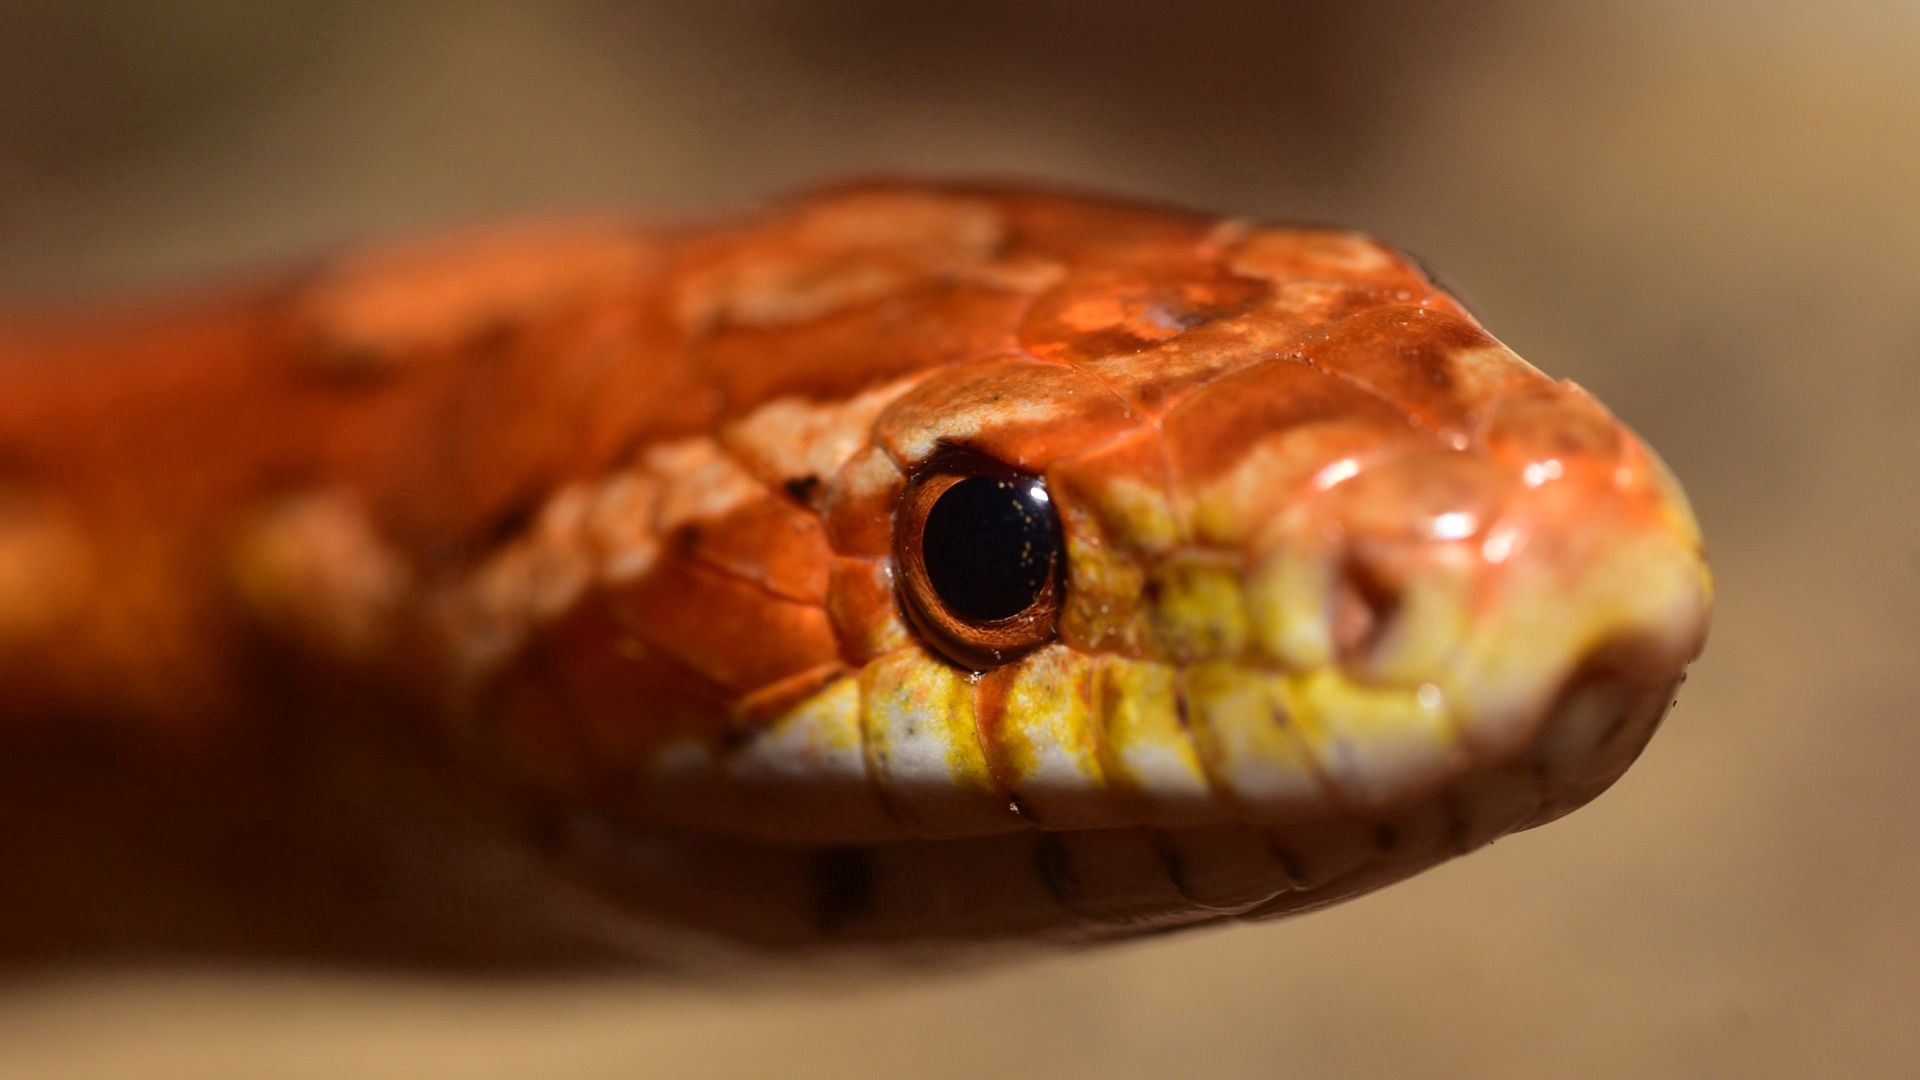 70298 download wallpaper Animals, Snake, Boa, Reptile, Eyes screensavers and pictures for free